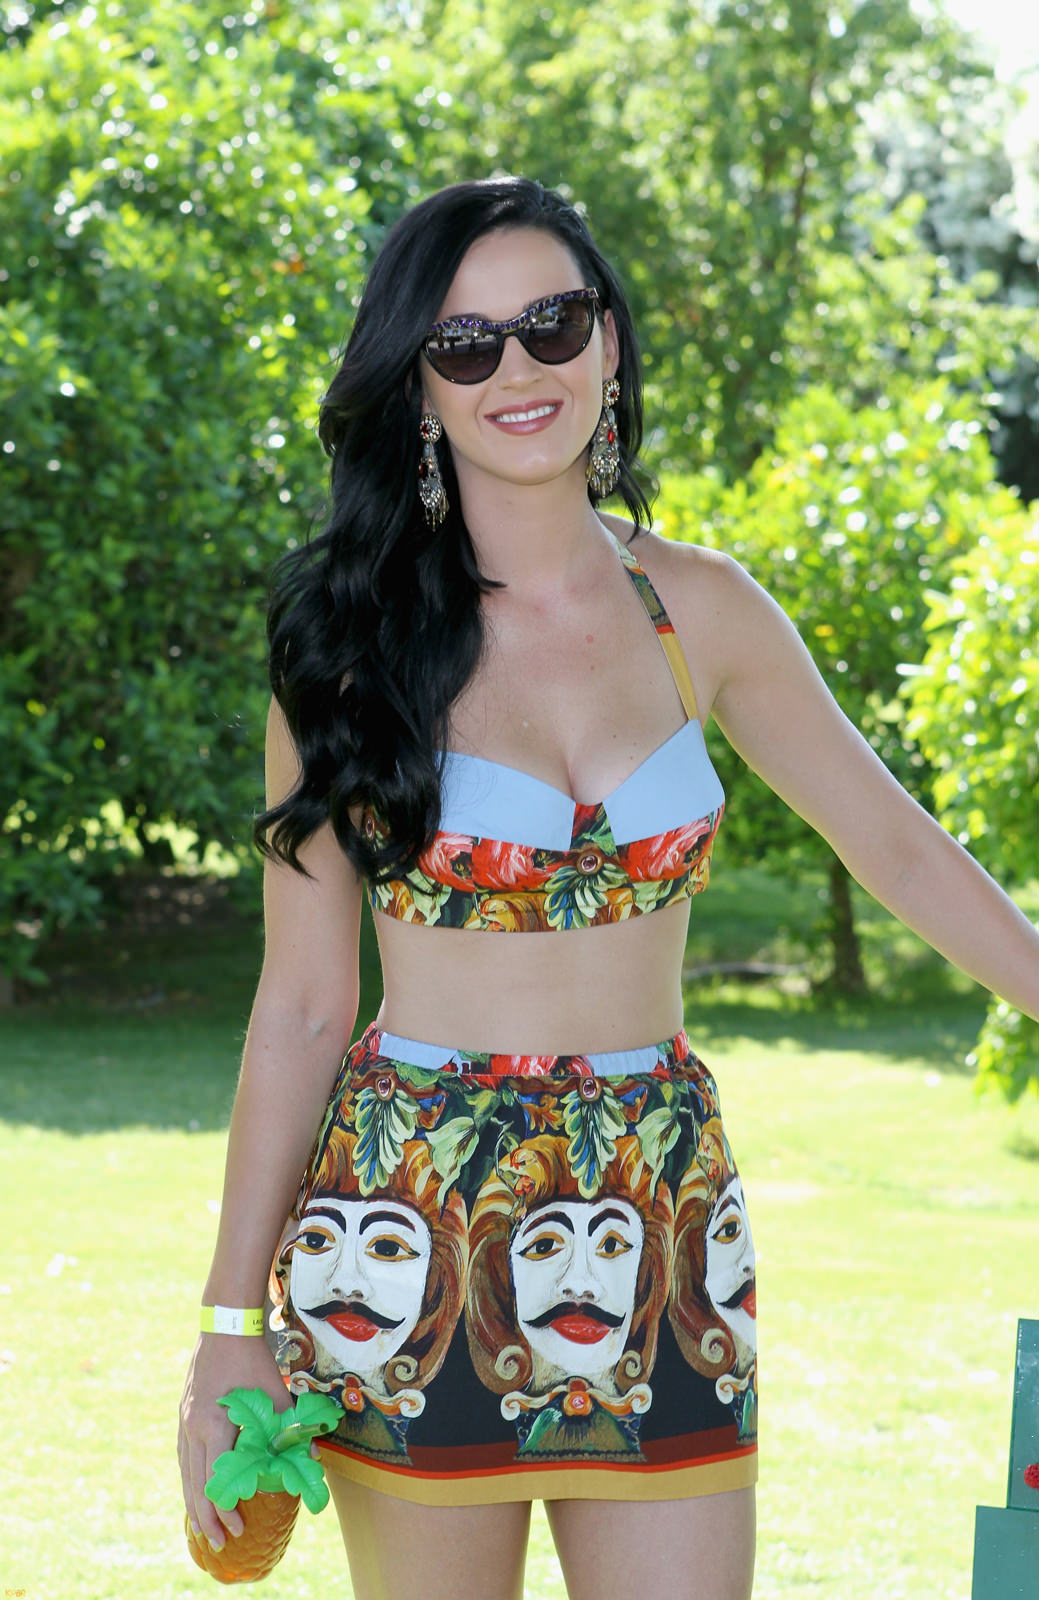 Katy Perry Photo Gallery